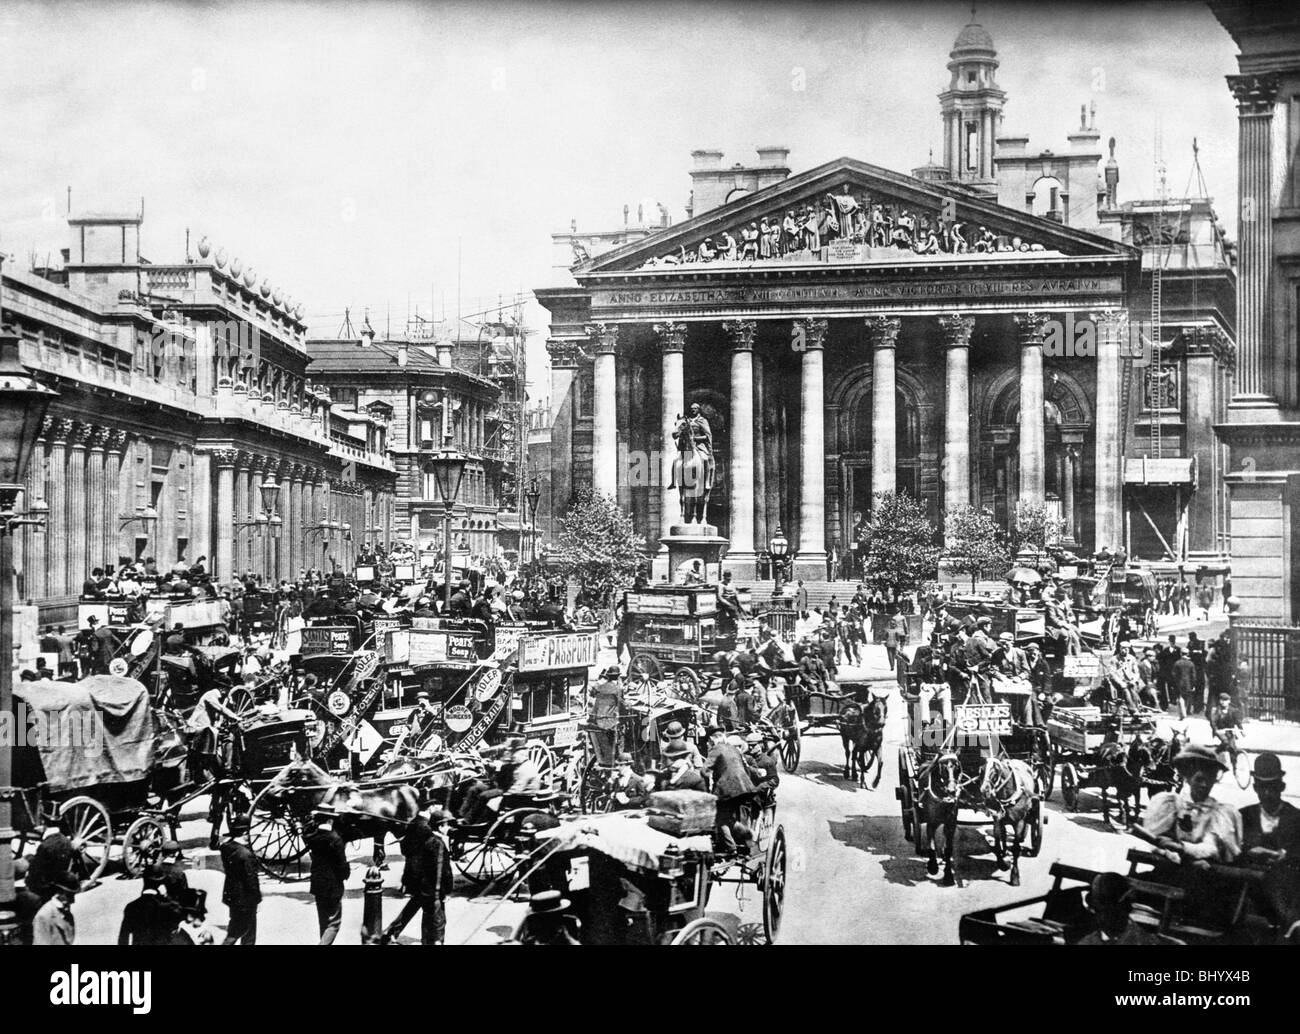 The Royal Exchange, City of London, c1900. - Stock Image